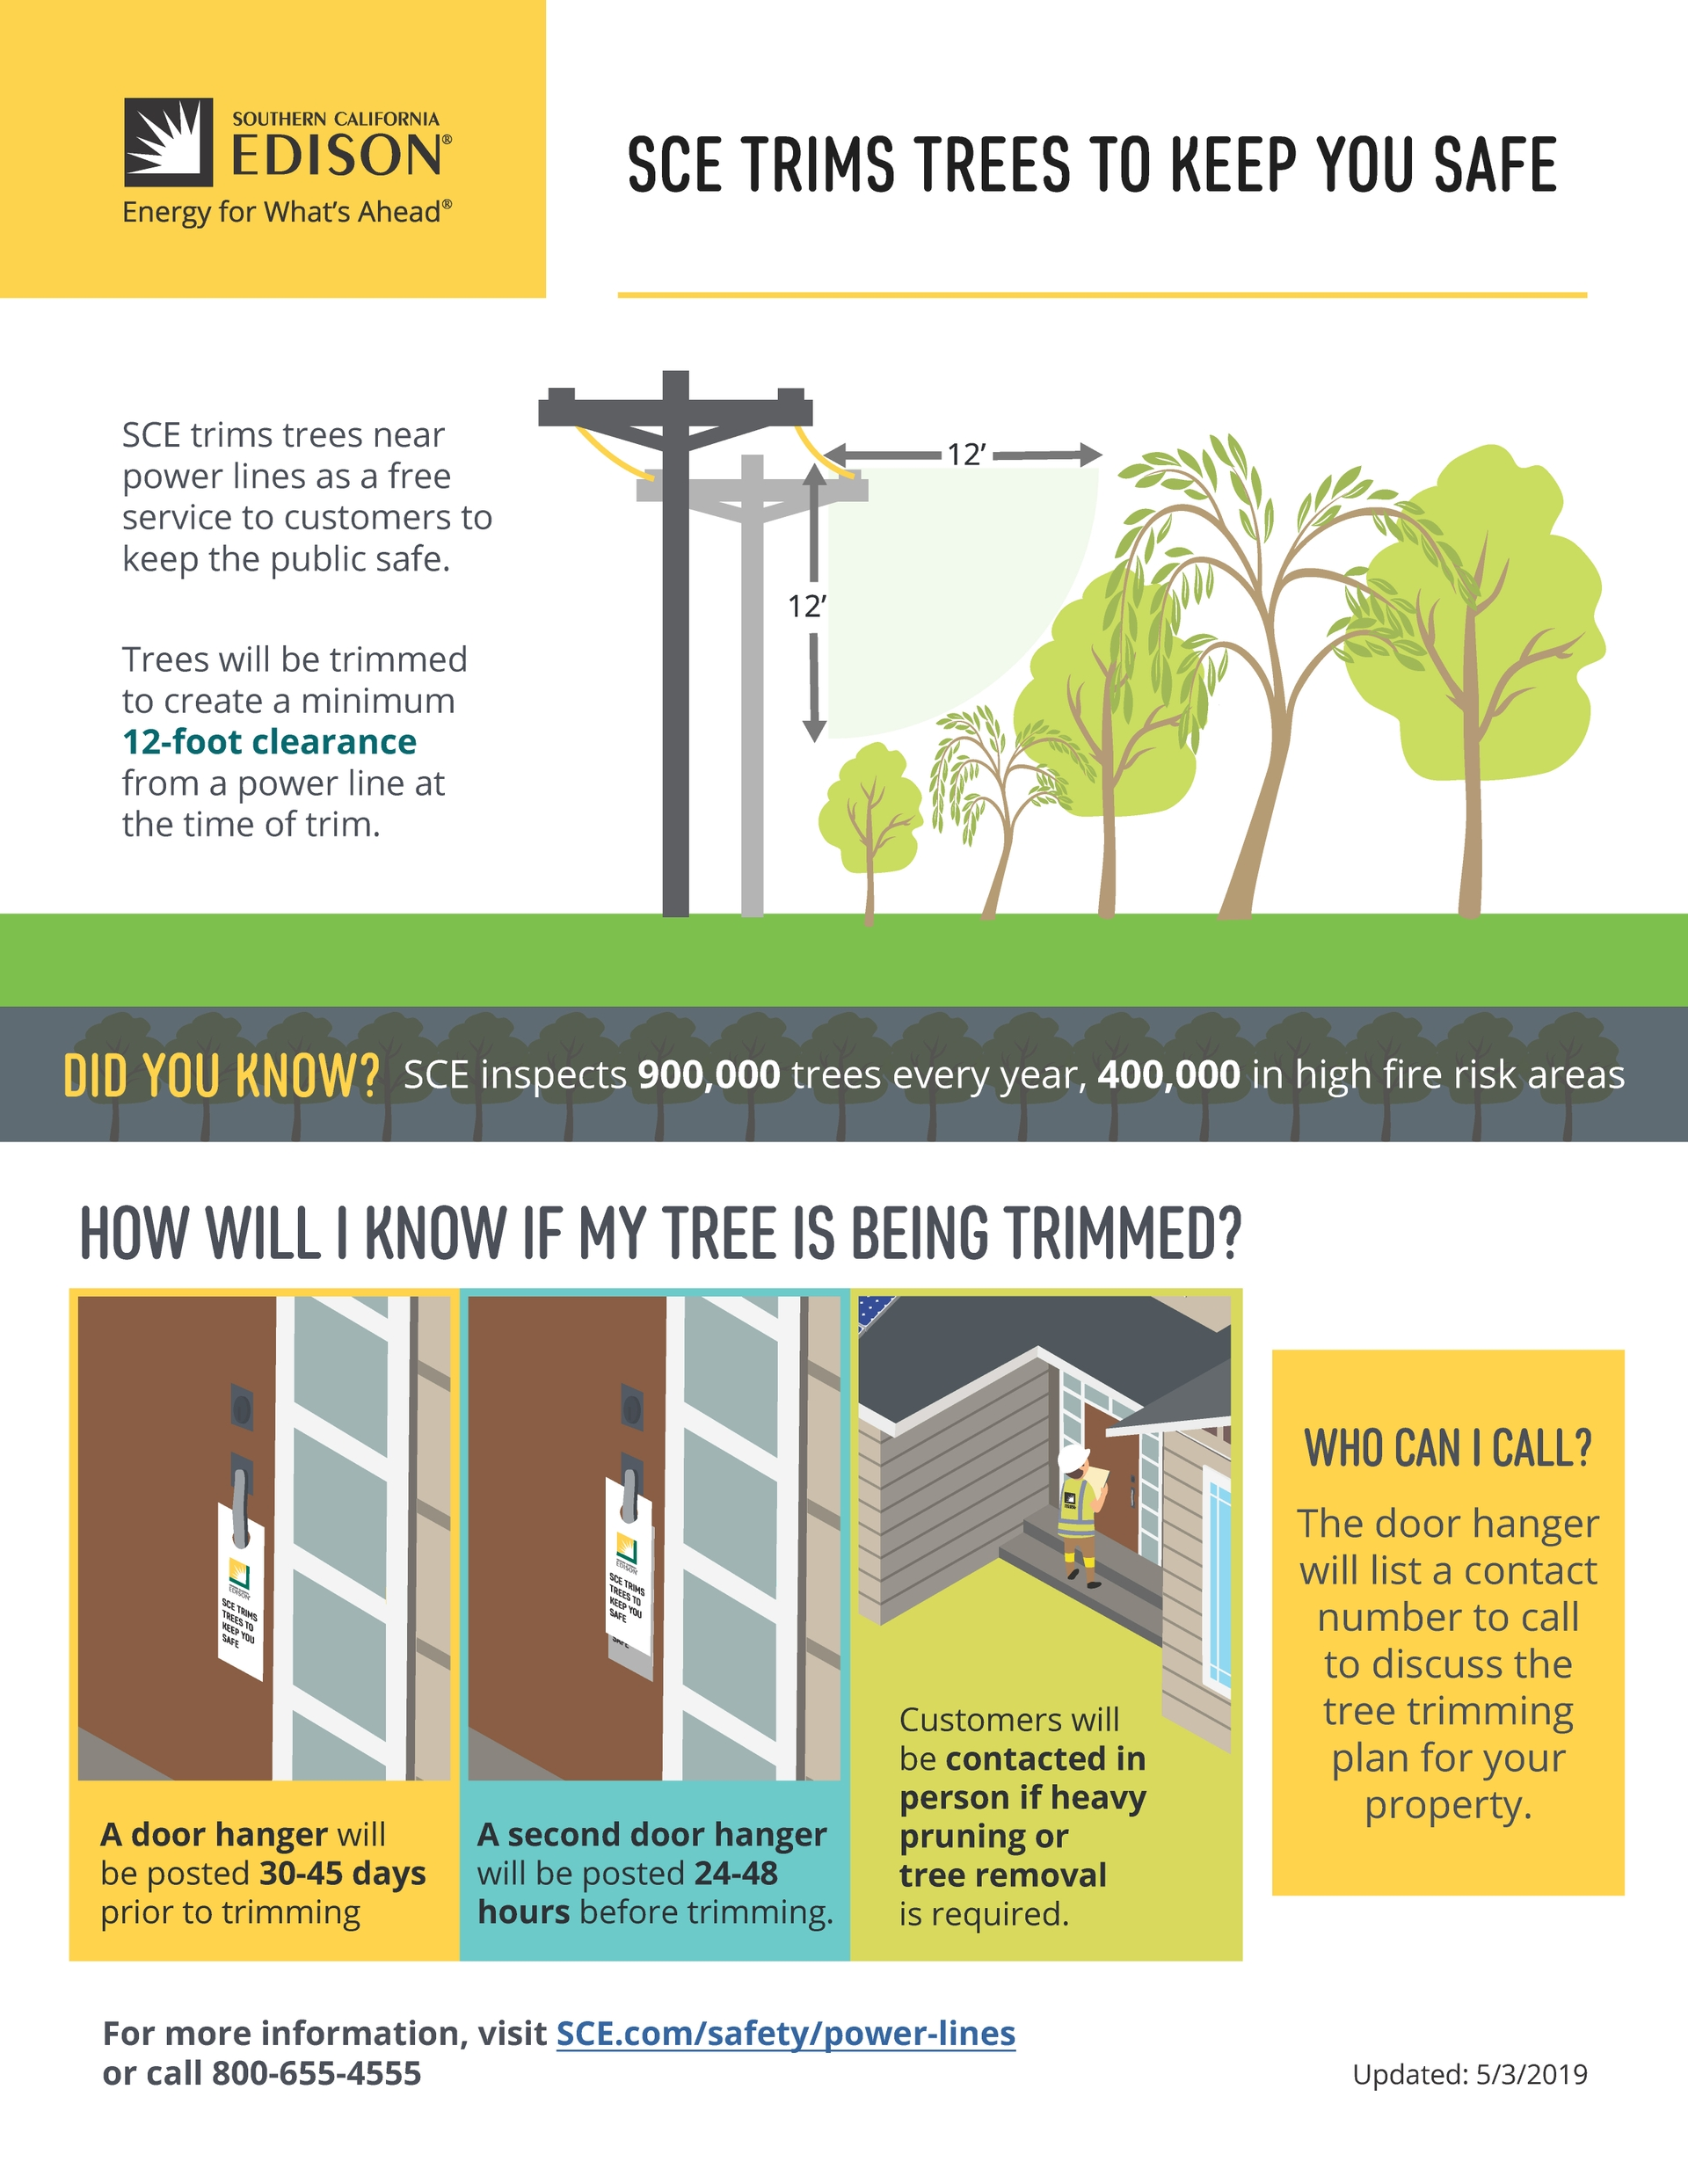 SCE trims trees every year for public safety and power reliability.